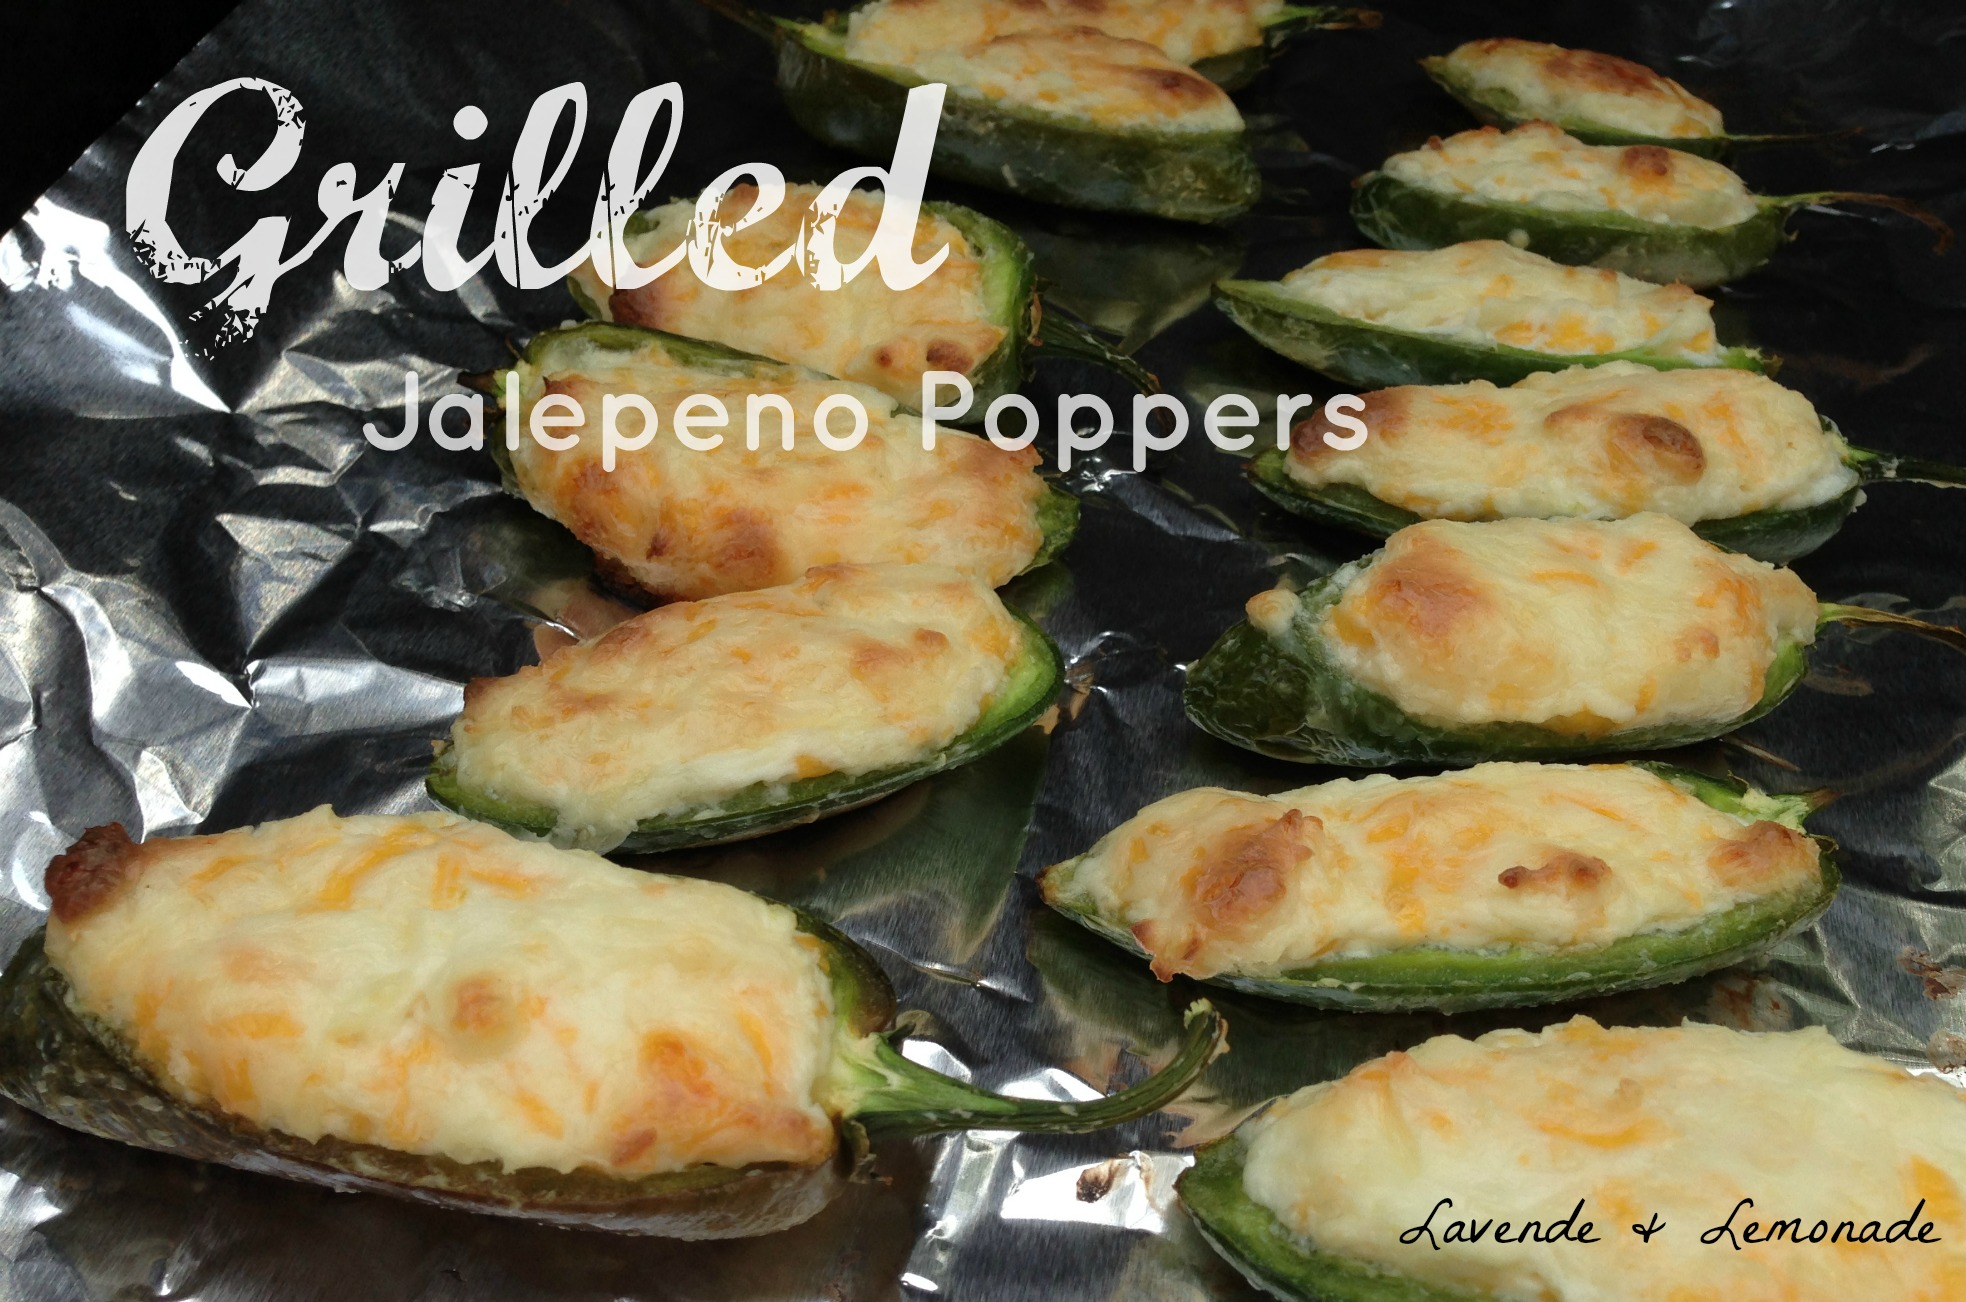 Spicy Grilled Jalapeno Poppers